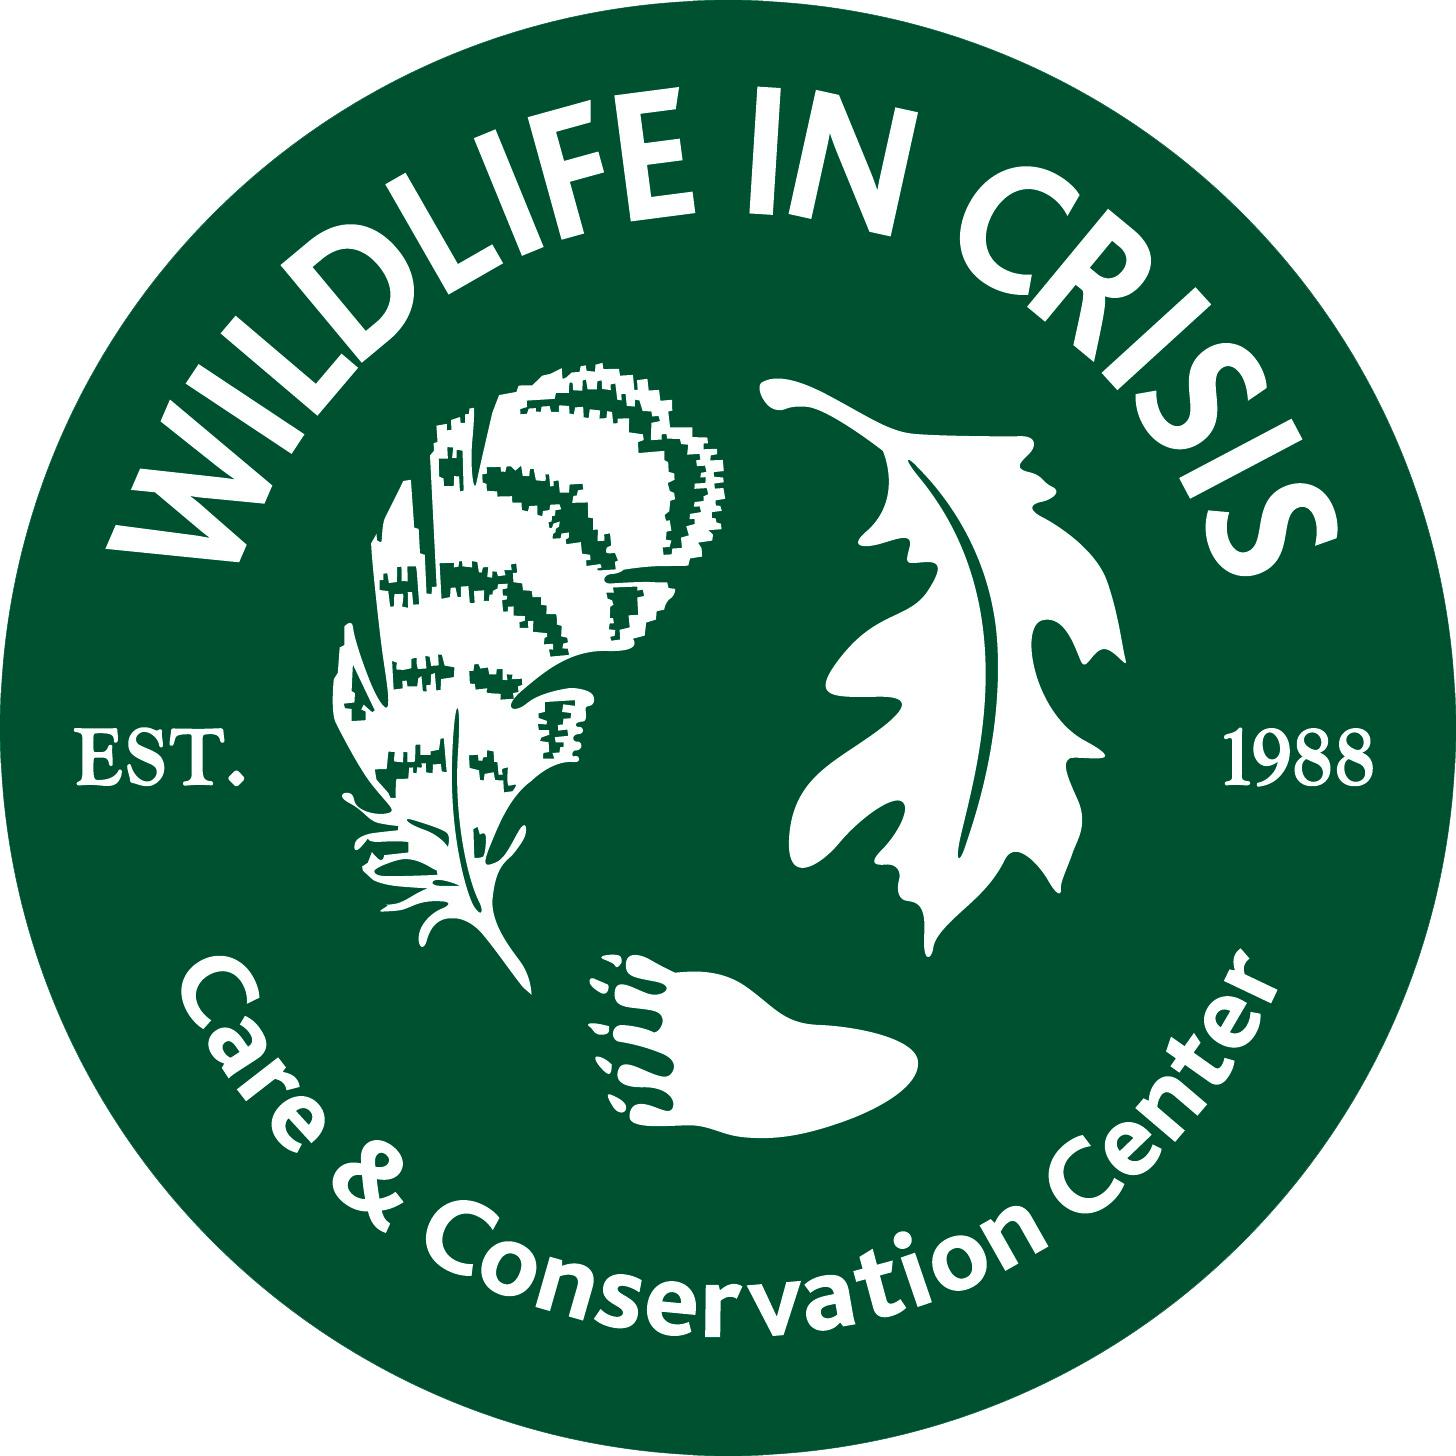 Wildlife in Crisis logo